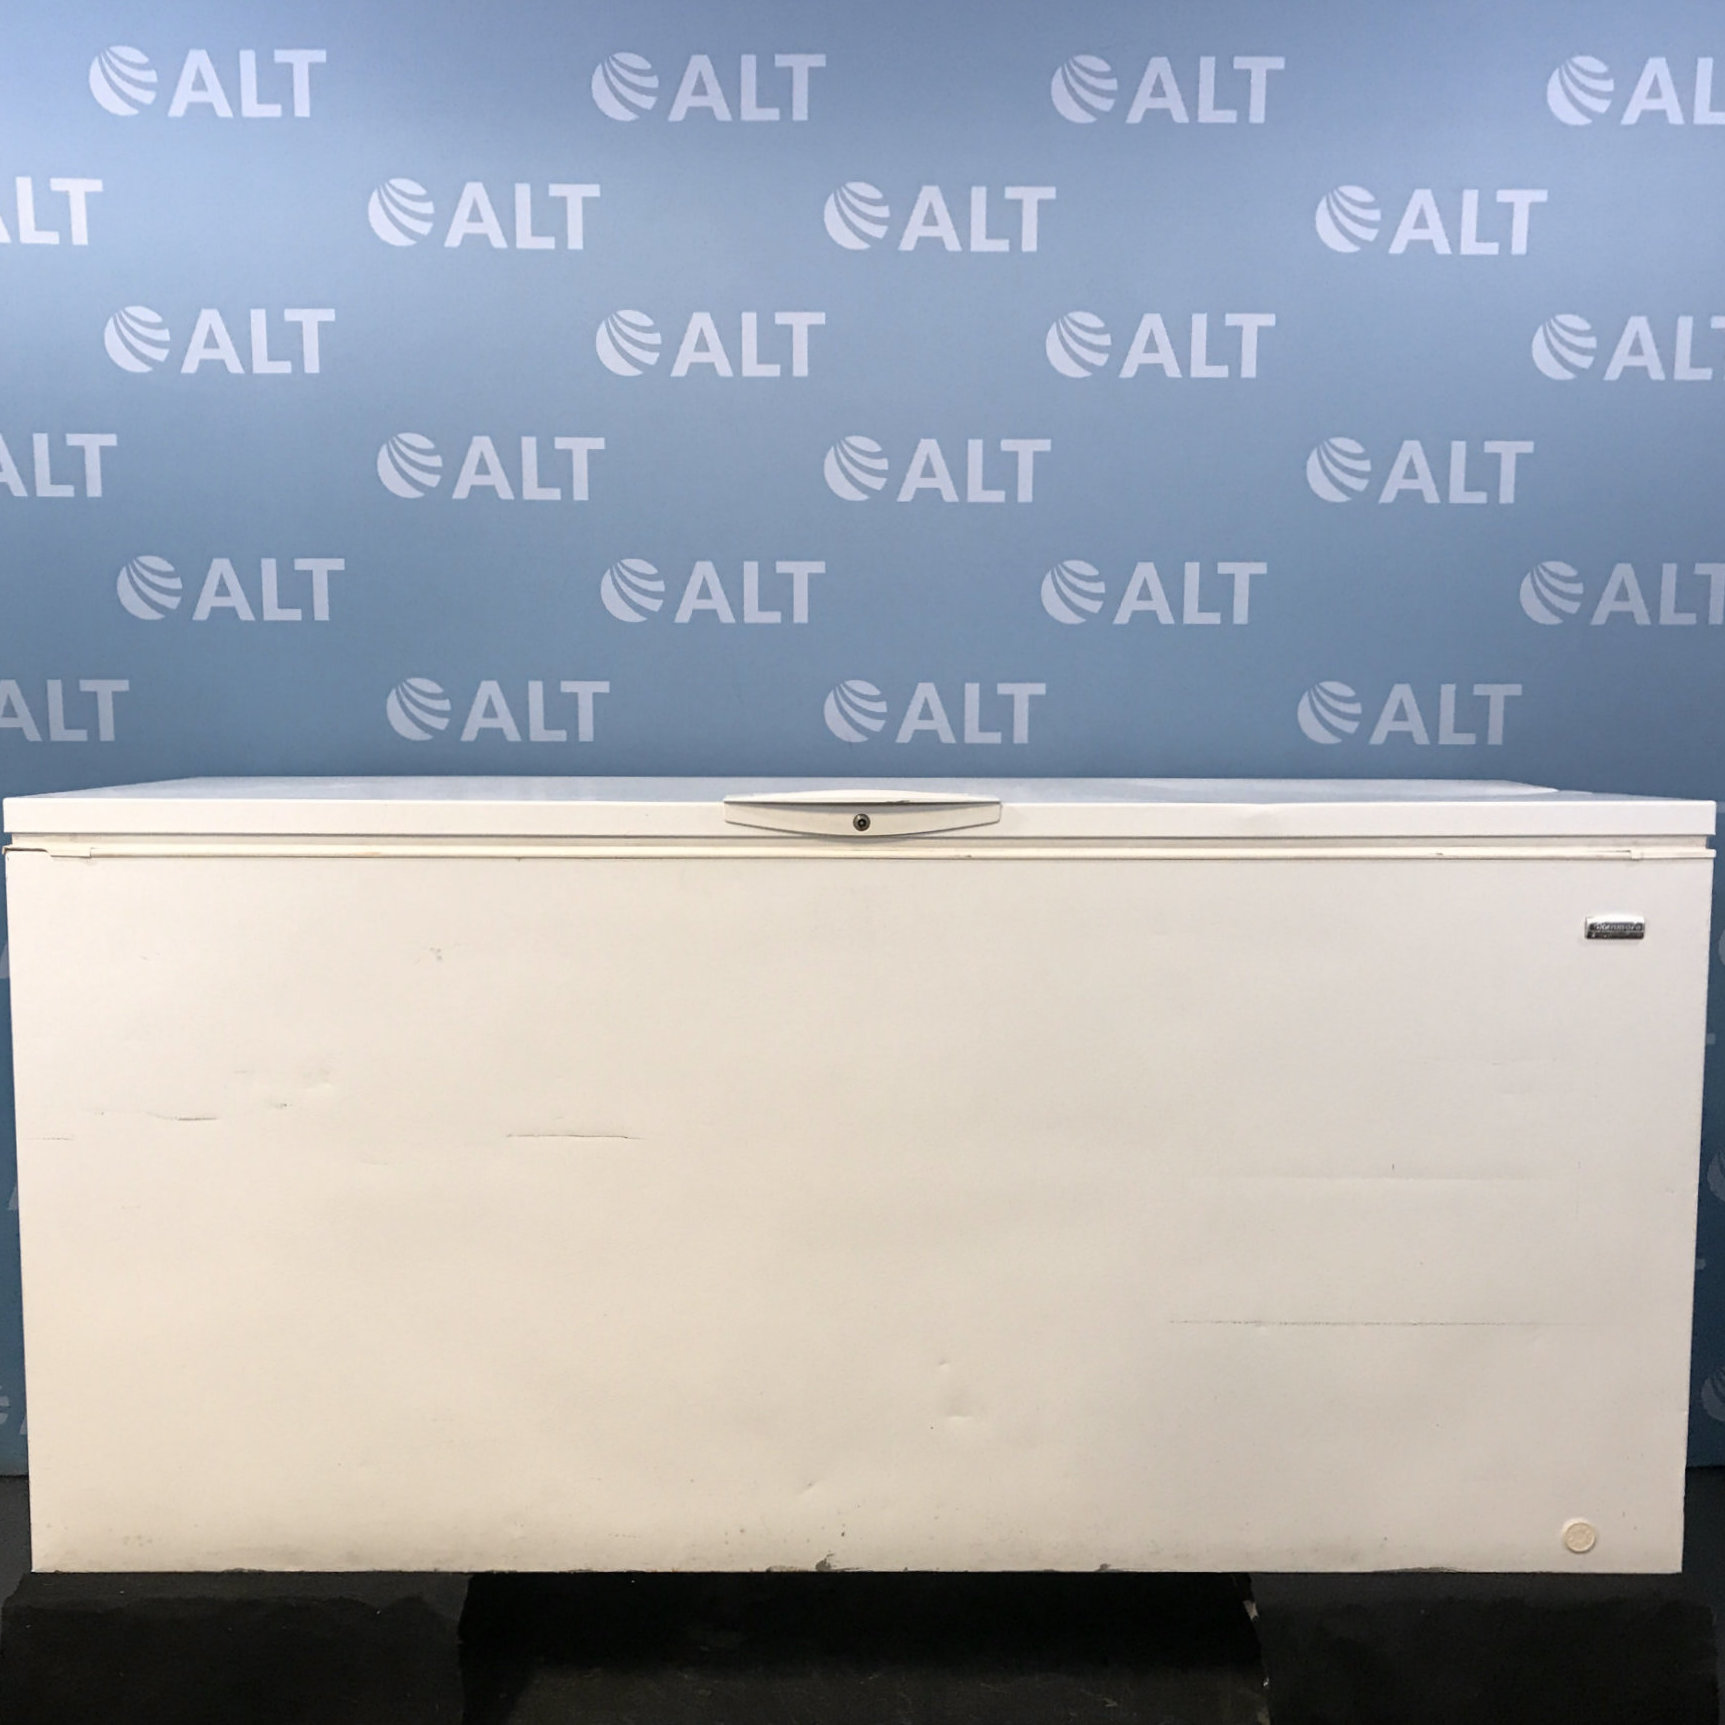 24.6 cu. ft. Chest Freezer Model 253.16582102 Name